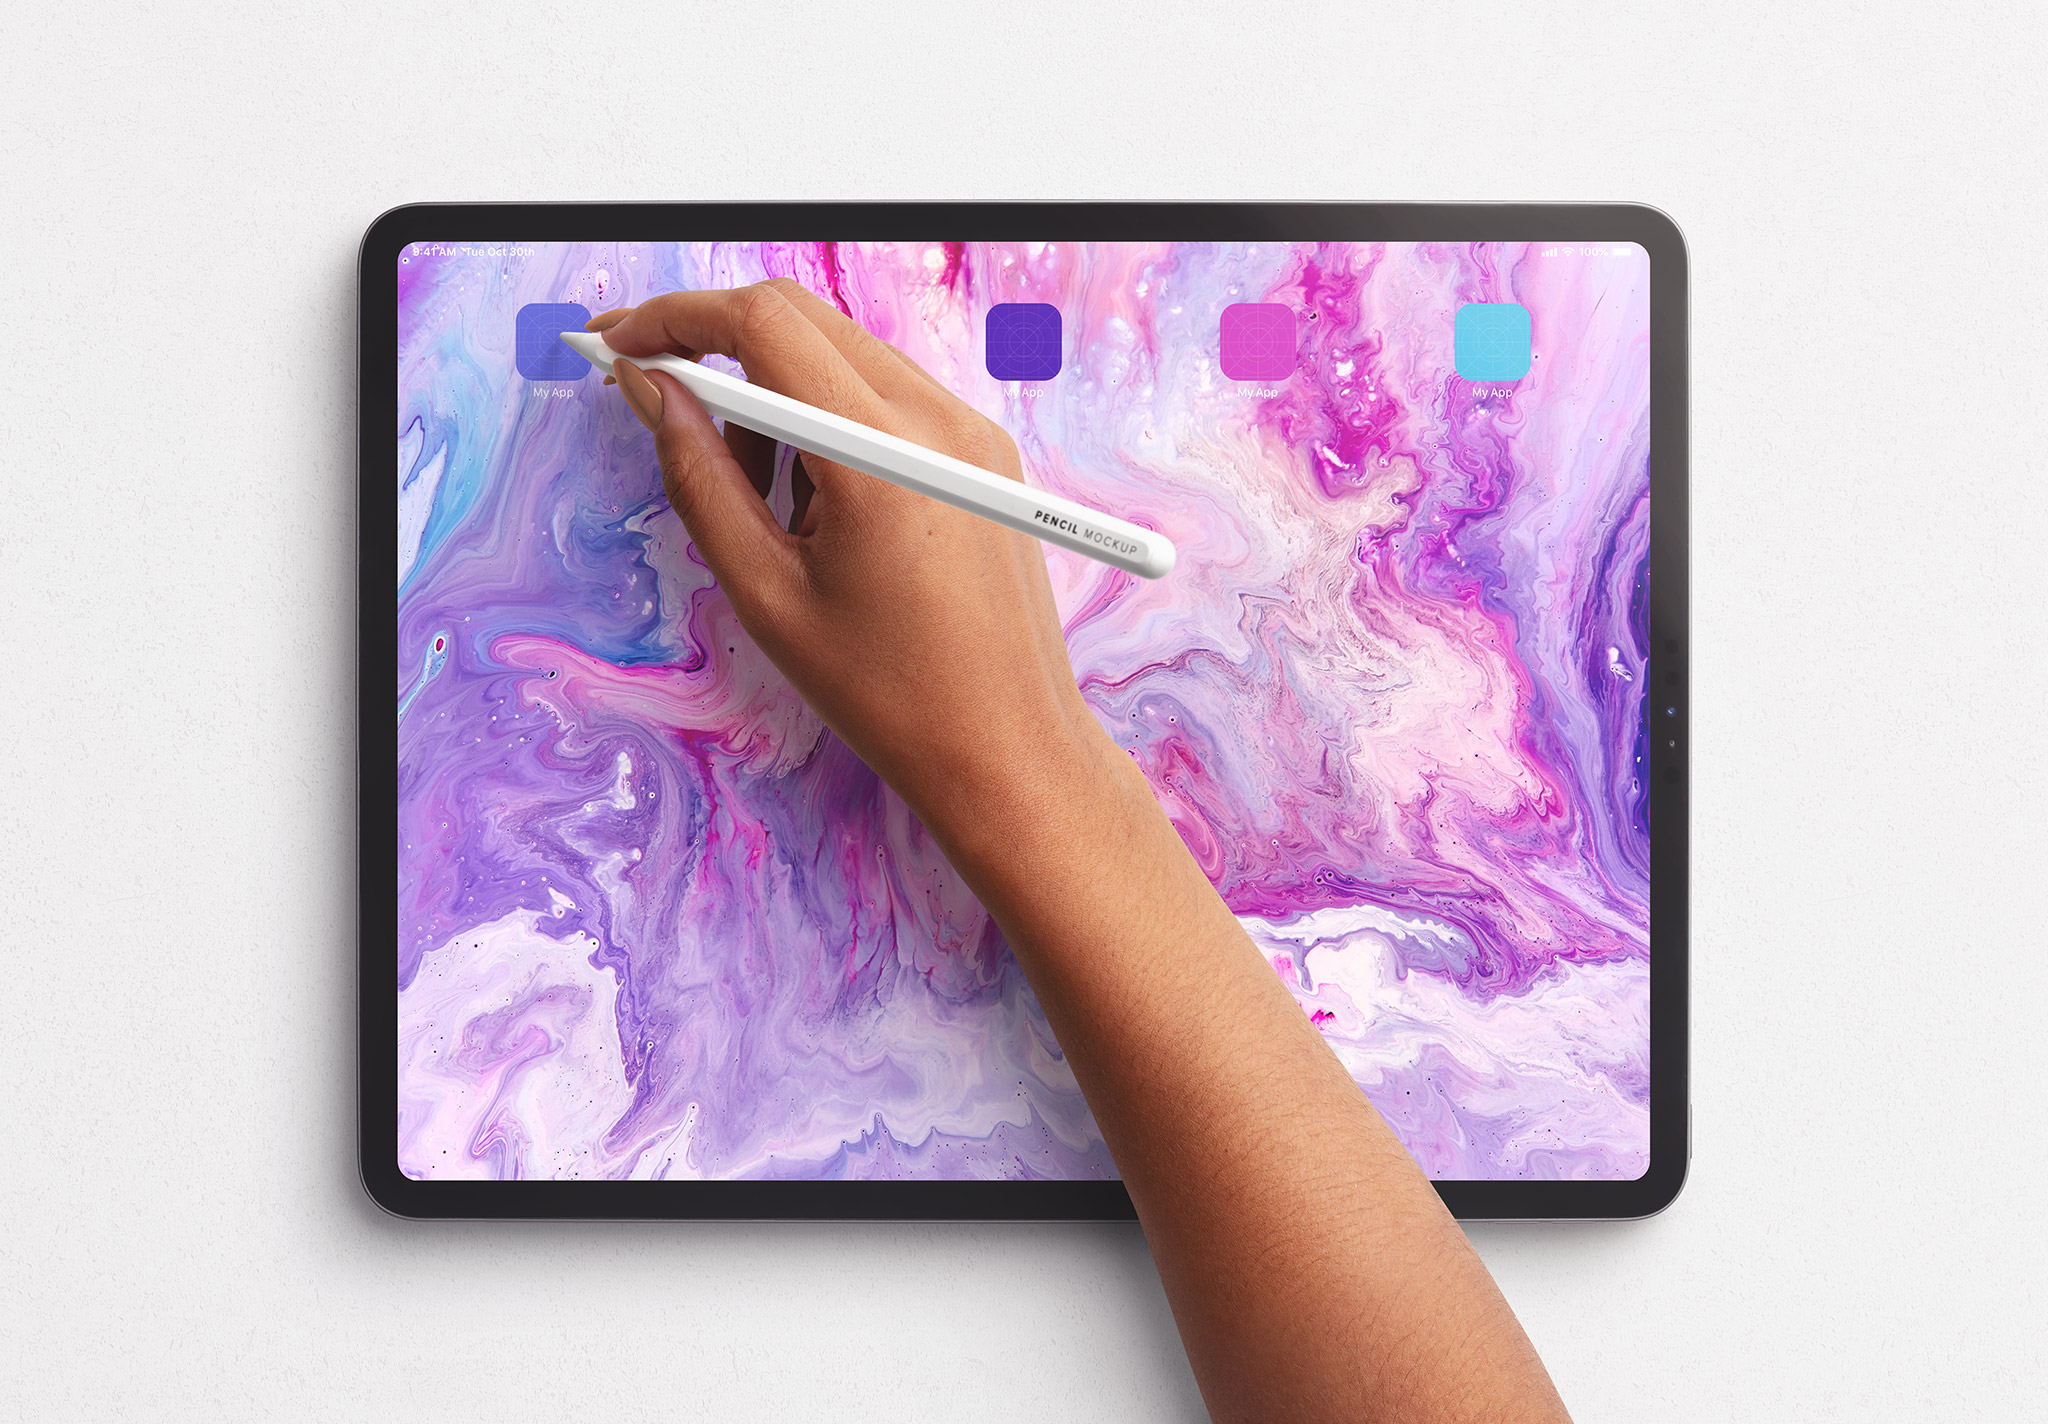 Tablet Pro Mockup with Hand Holding Pencil Image03